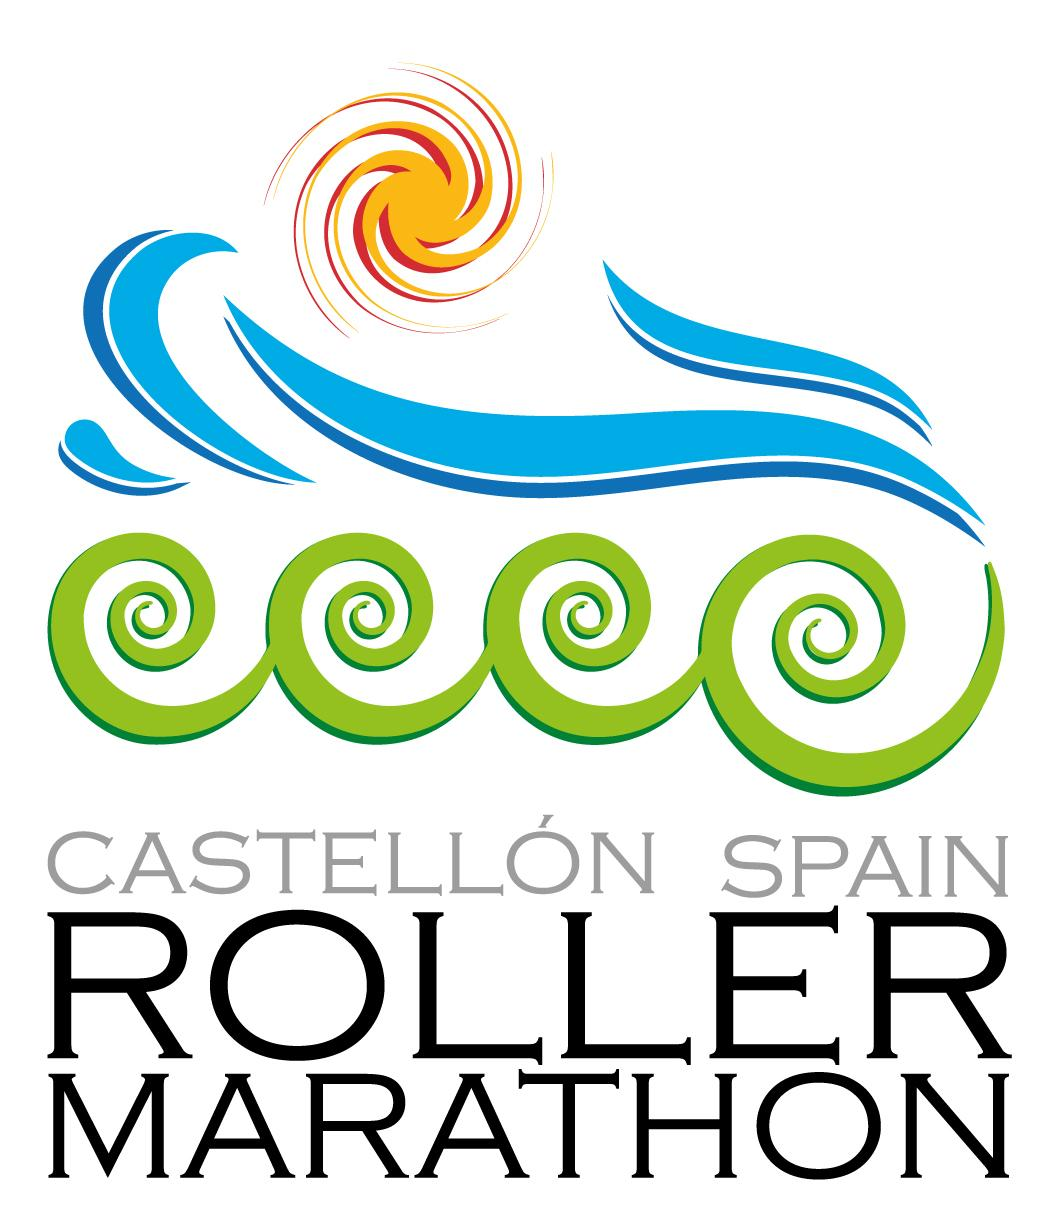 Castellon Spain Roller Marathons